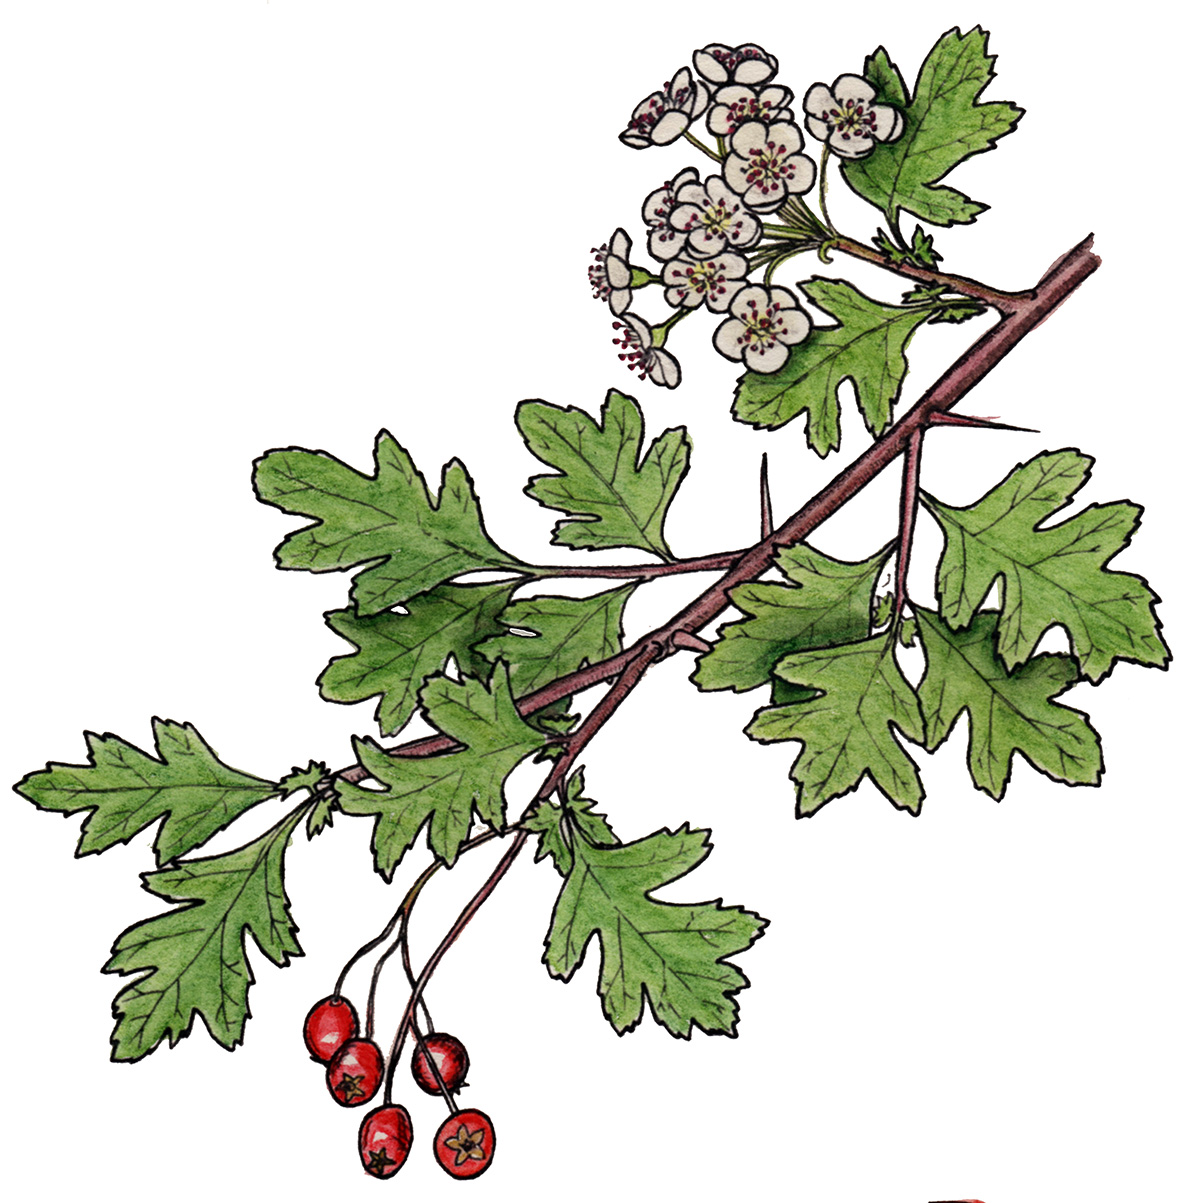 The History, Mythology, and Offerings of Hawthorn   Herbal Academy   Come hear of the myths, benefits, and offerings of hawthorn, and get two easy hawthorn recipes to use throughout the fall season as well.